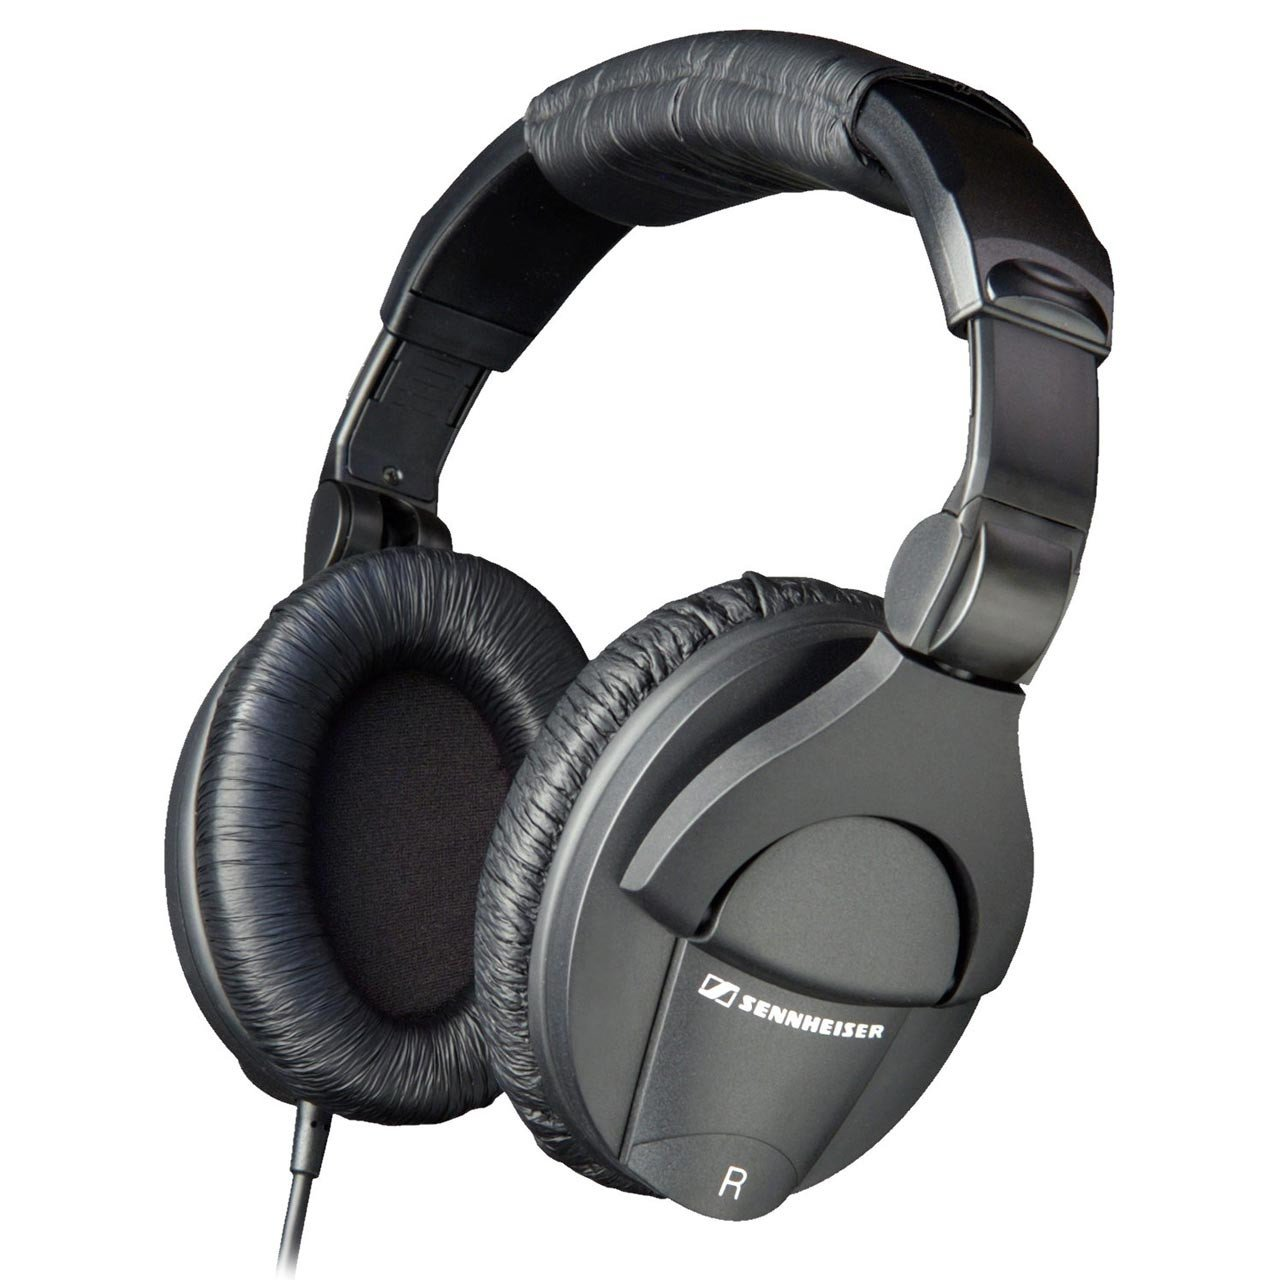 Closed Headphones - Sennheiser HD 280 PRO Closed Headphones (Version 2)